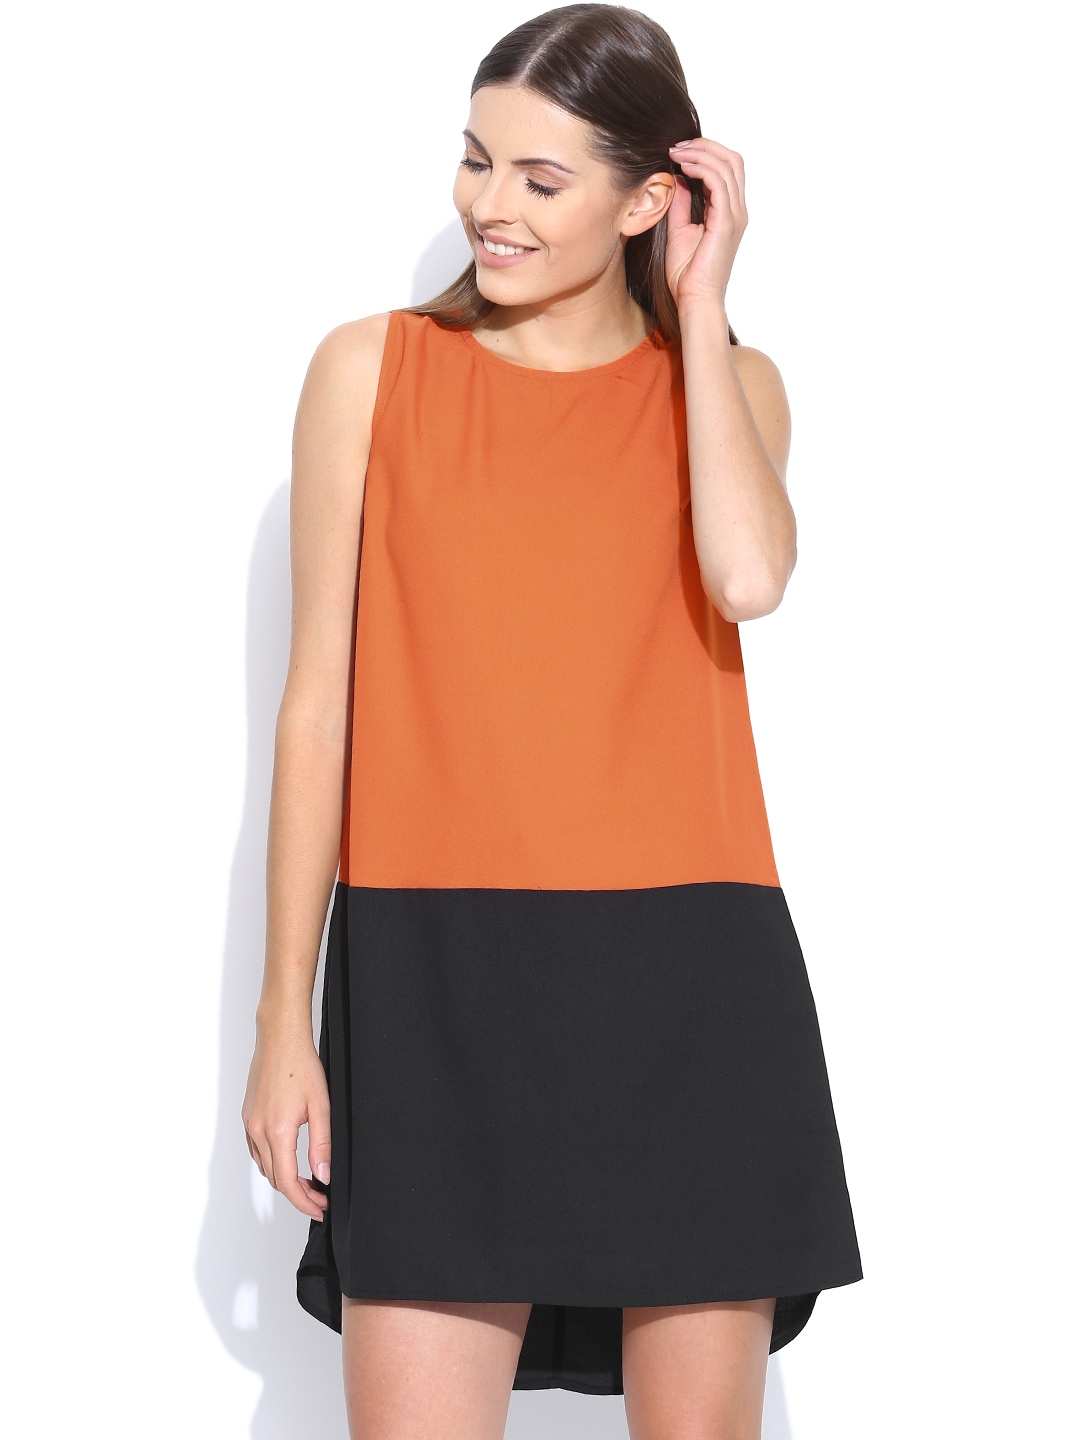 Woven Dress - Buy Woven Dress online in India 3927812a9